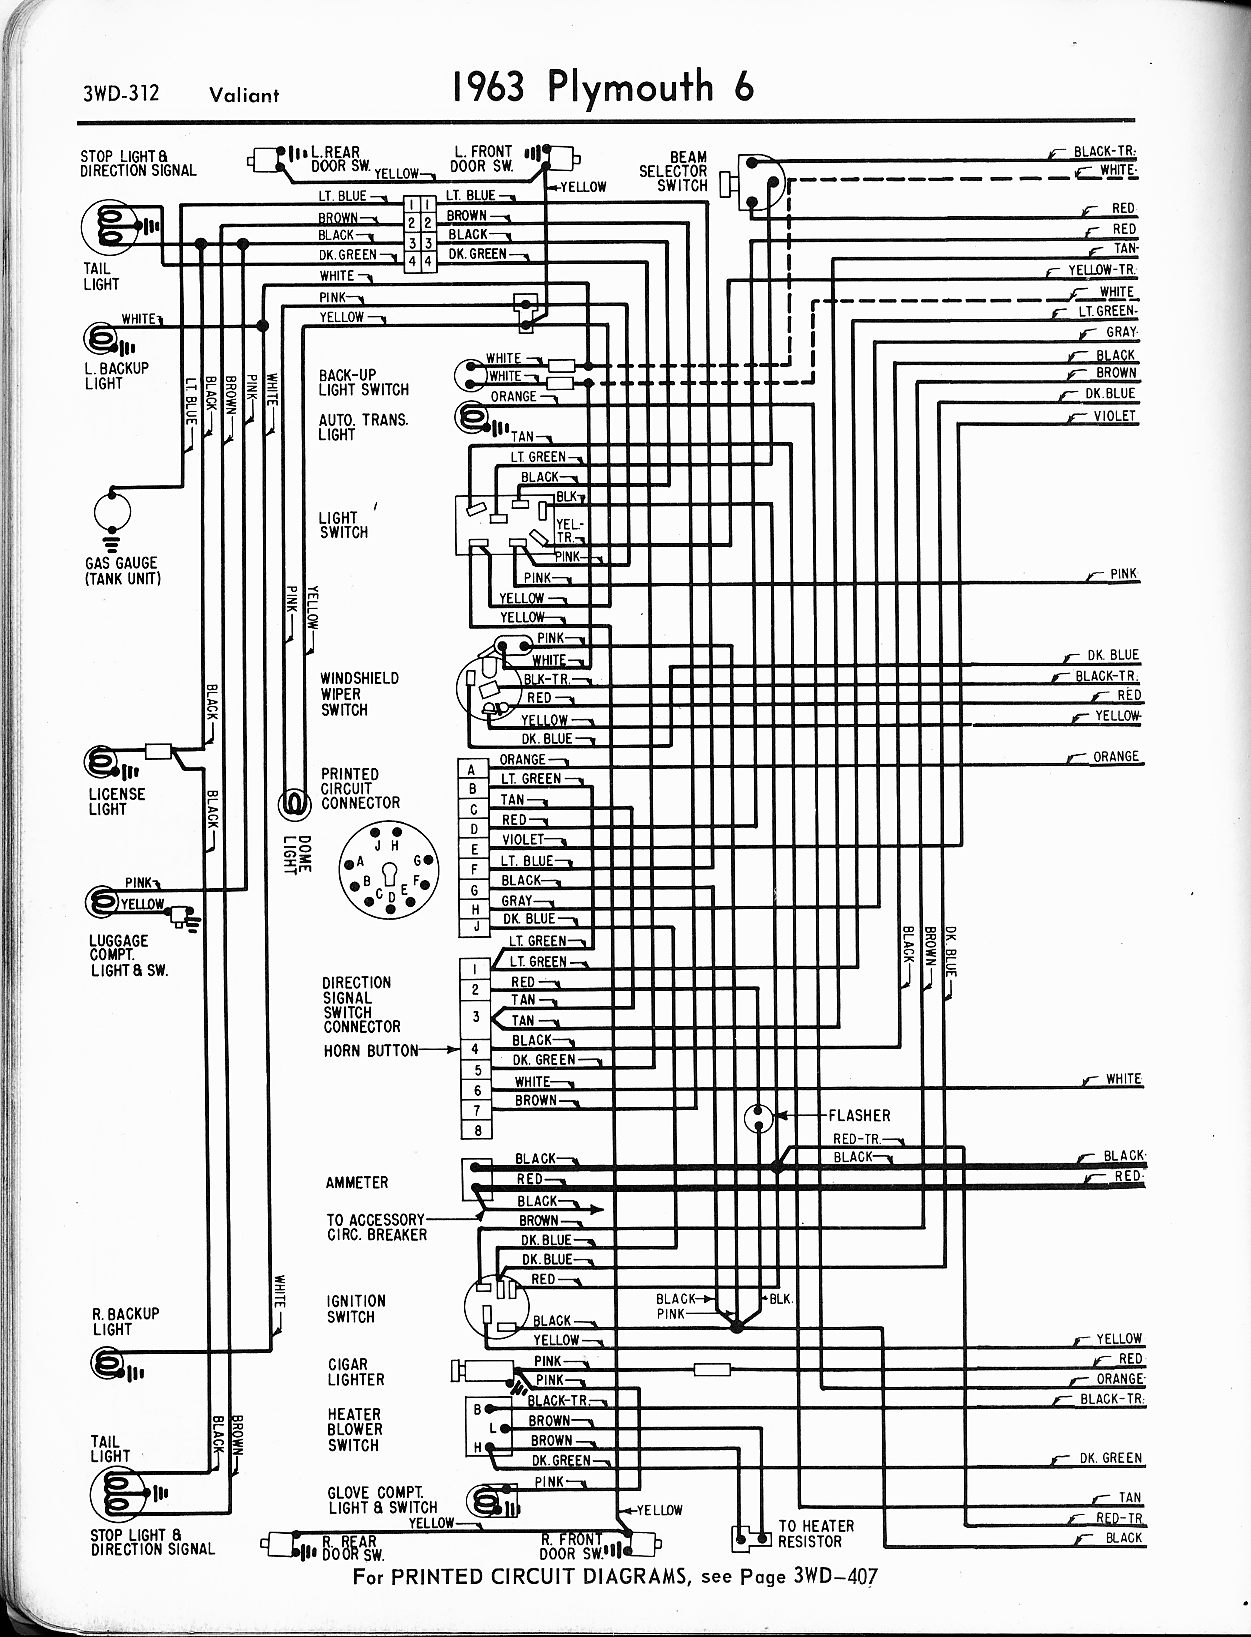 1970 Cuda Dash Wiring Diagram | Wiring Diagram  Dodge Challenger Wiring Diagram Free Download on dodge d100 wiring diagram, dodge viper wiring diagram, dodge challenger engine diagram, dodge dakota wiring diagram, chrysler dodge wiring diagram, dodge magnum wiring diagram, dodge omni wiring diagram, dodge challenger outline drawing, dodge d150 wiring diagram, dodge challenger rear bumper removal, 1955 dodge wiring diagram, dodge challenger speaker, dodge challenger amp location, dodge 3500 wiring diagram, dodge w150 wiring diagram, dodge challenger fuel tank, dodge challenger air cleaner, dodge m37 wiring diagram, dodge durango wiring diagram, dodge pickup wiring diagram,